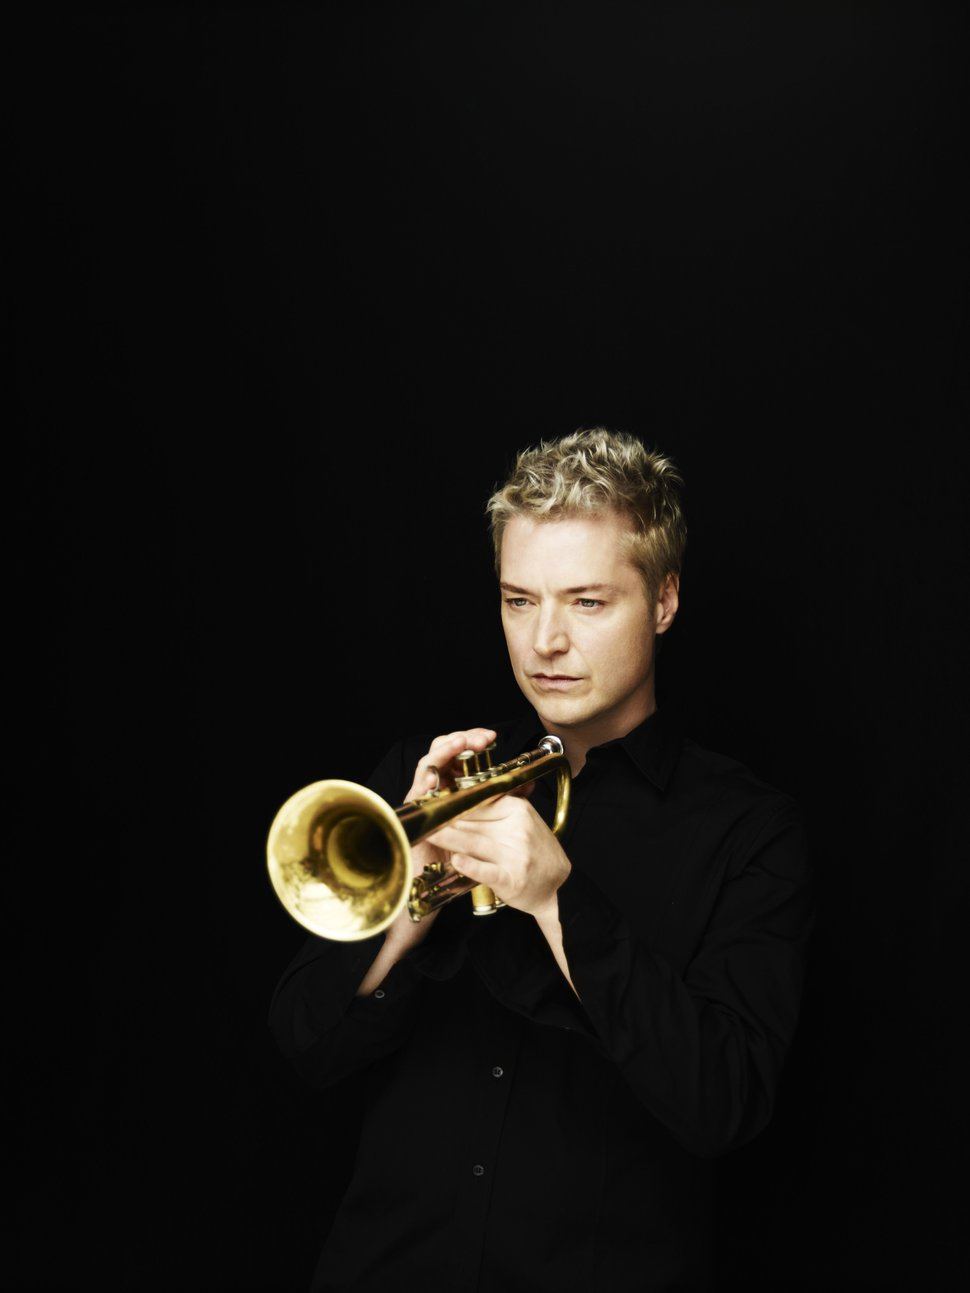 (Courtesy photo | Fabrizio Ferri ) Trumpeter Chris Botti is one of the headliners slated to perform with the Utah Symphony at the Deer Valley Music Festival. Botti will kick off the summer festival with a concert on June 28, 2019.